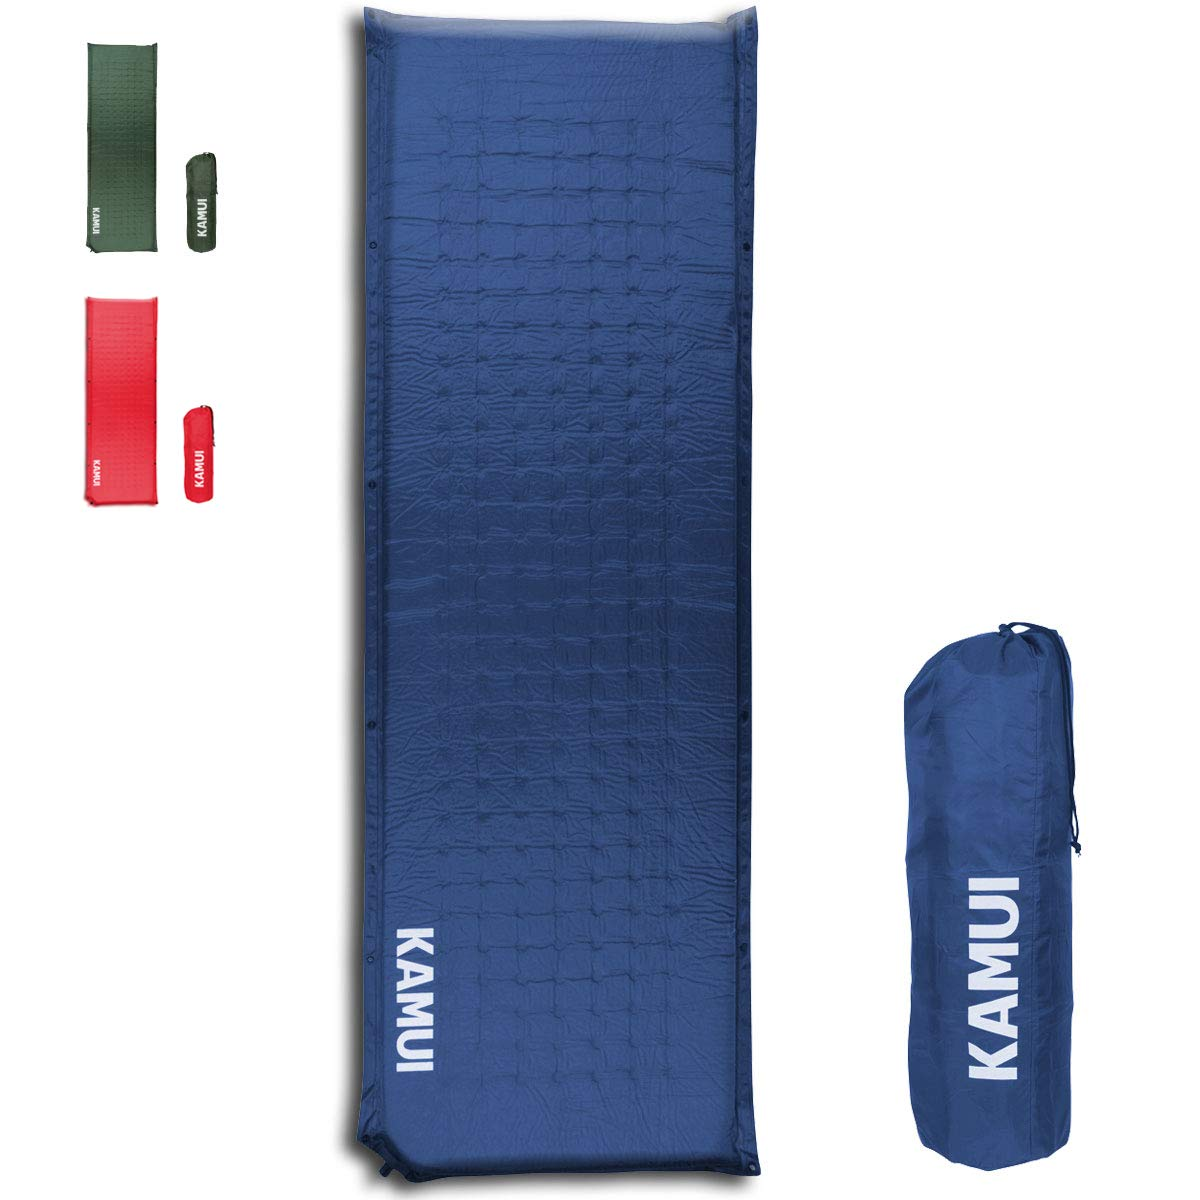 KAMUI Self Inflating Sleeping Pad - 2 Inch Thick Camping Pad Connectable with Multiple Mats for Tent and Family Camping (Blue) by KAMUI